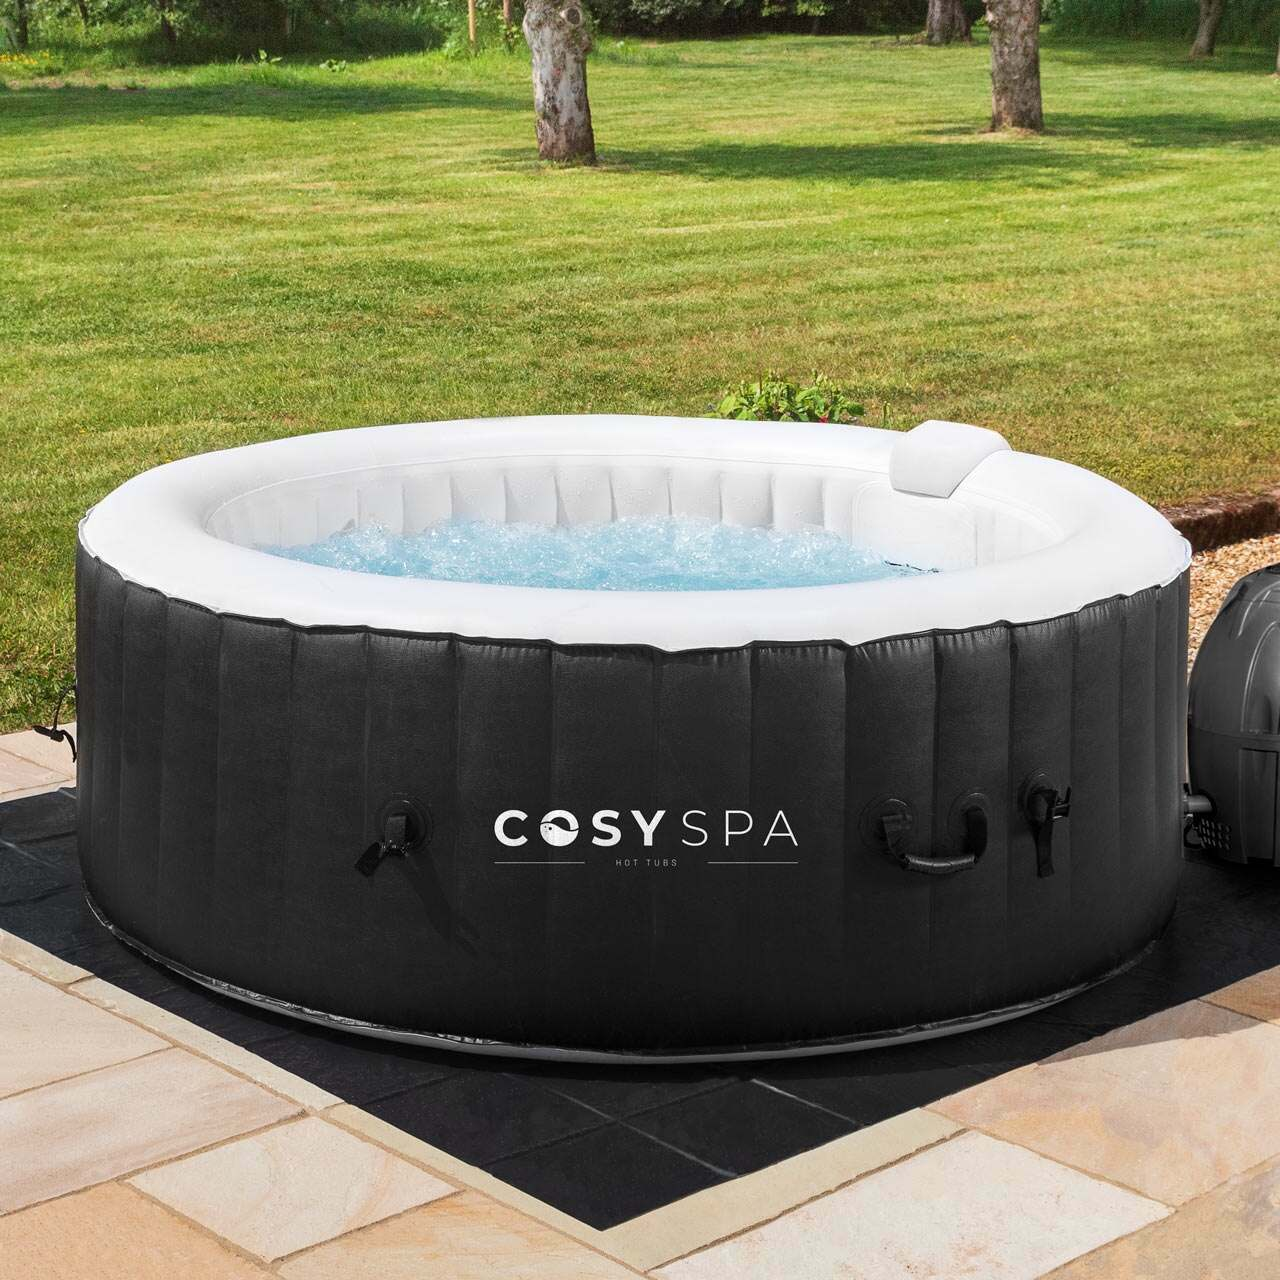 CosySpa Inflatable Hot Tub Spa [Jacuzzi]